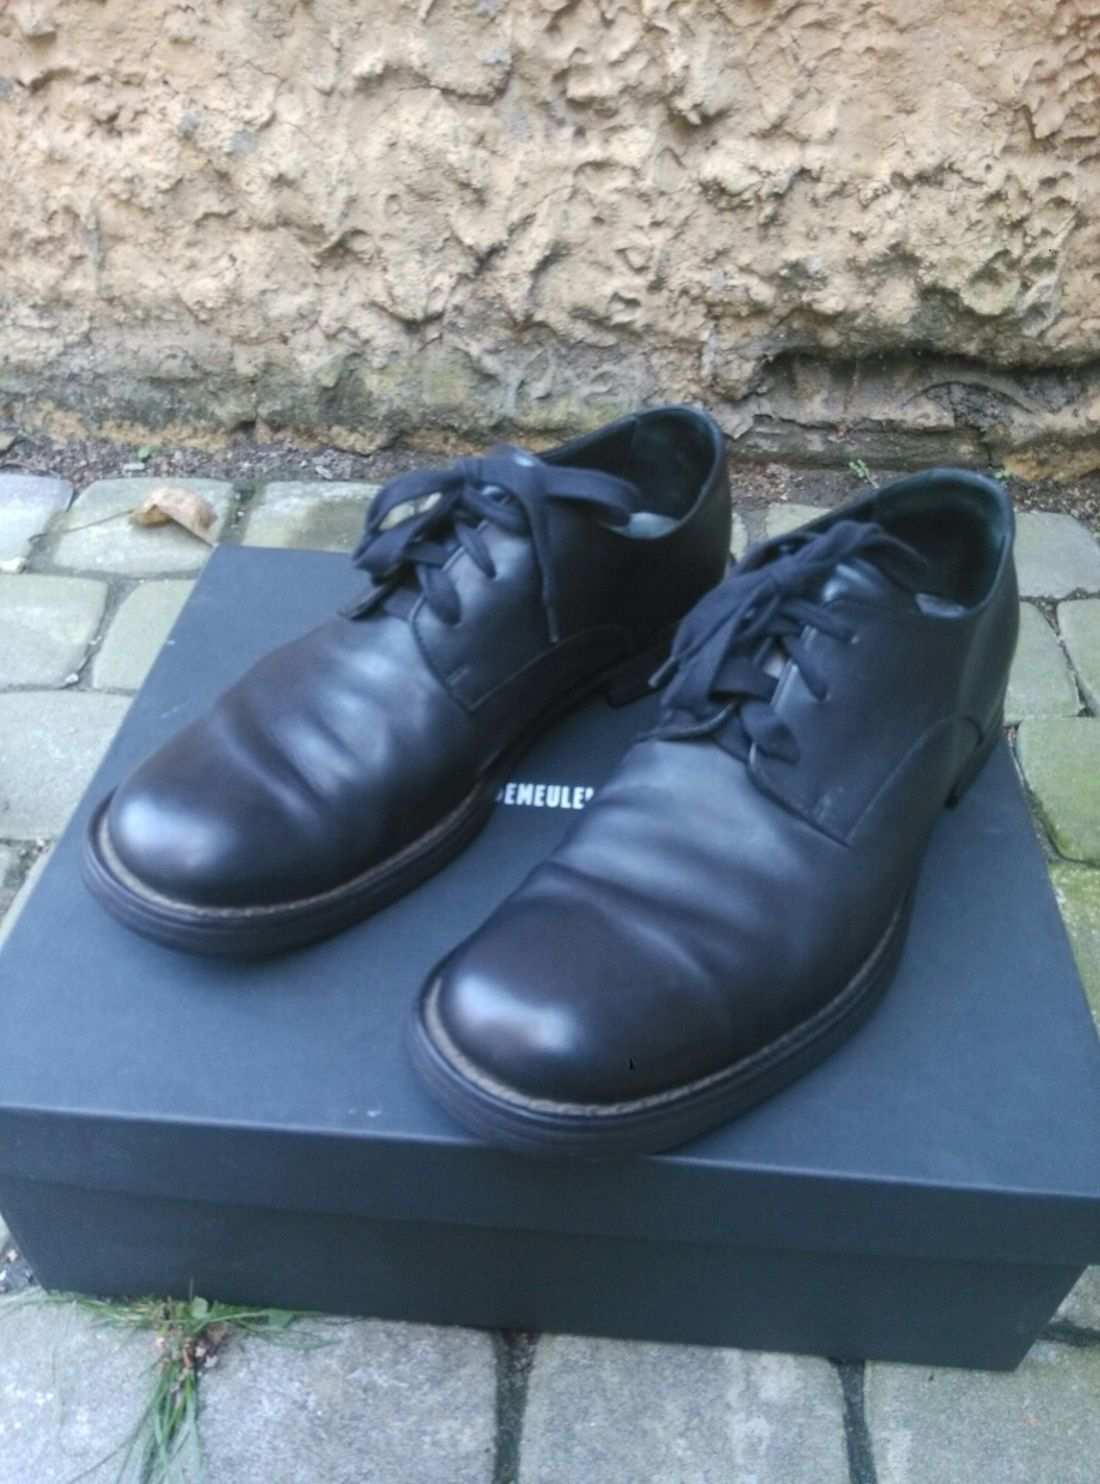 Ann Demeulemeester Black Leather Derby Shoes Margiela Poell Harnden Guidi Size 9 $299 - Grailed